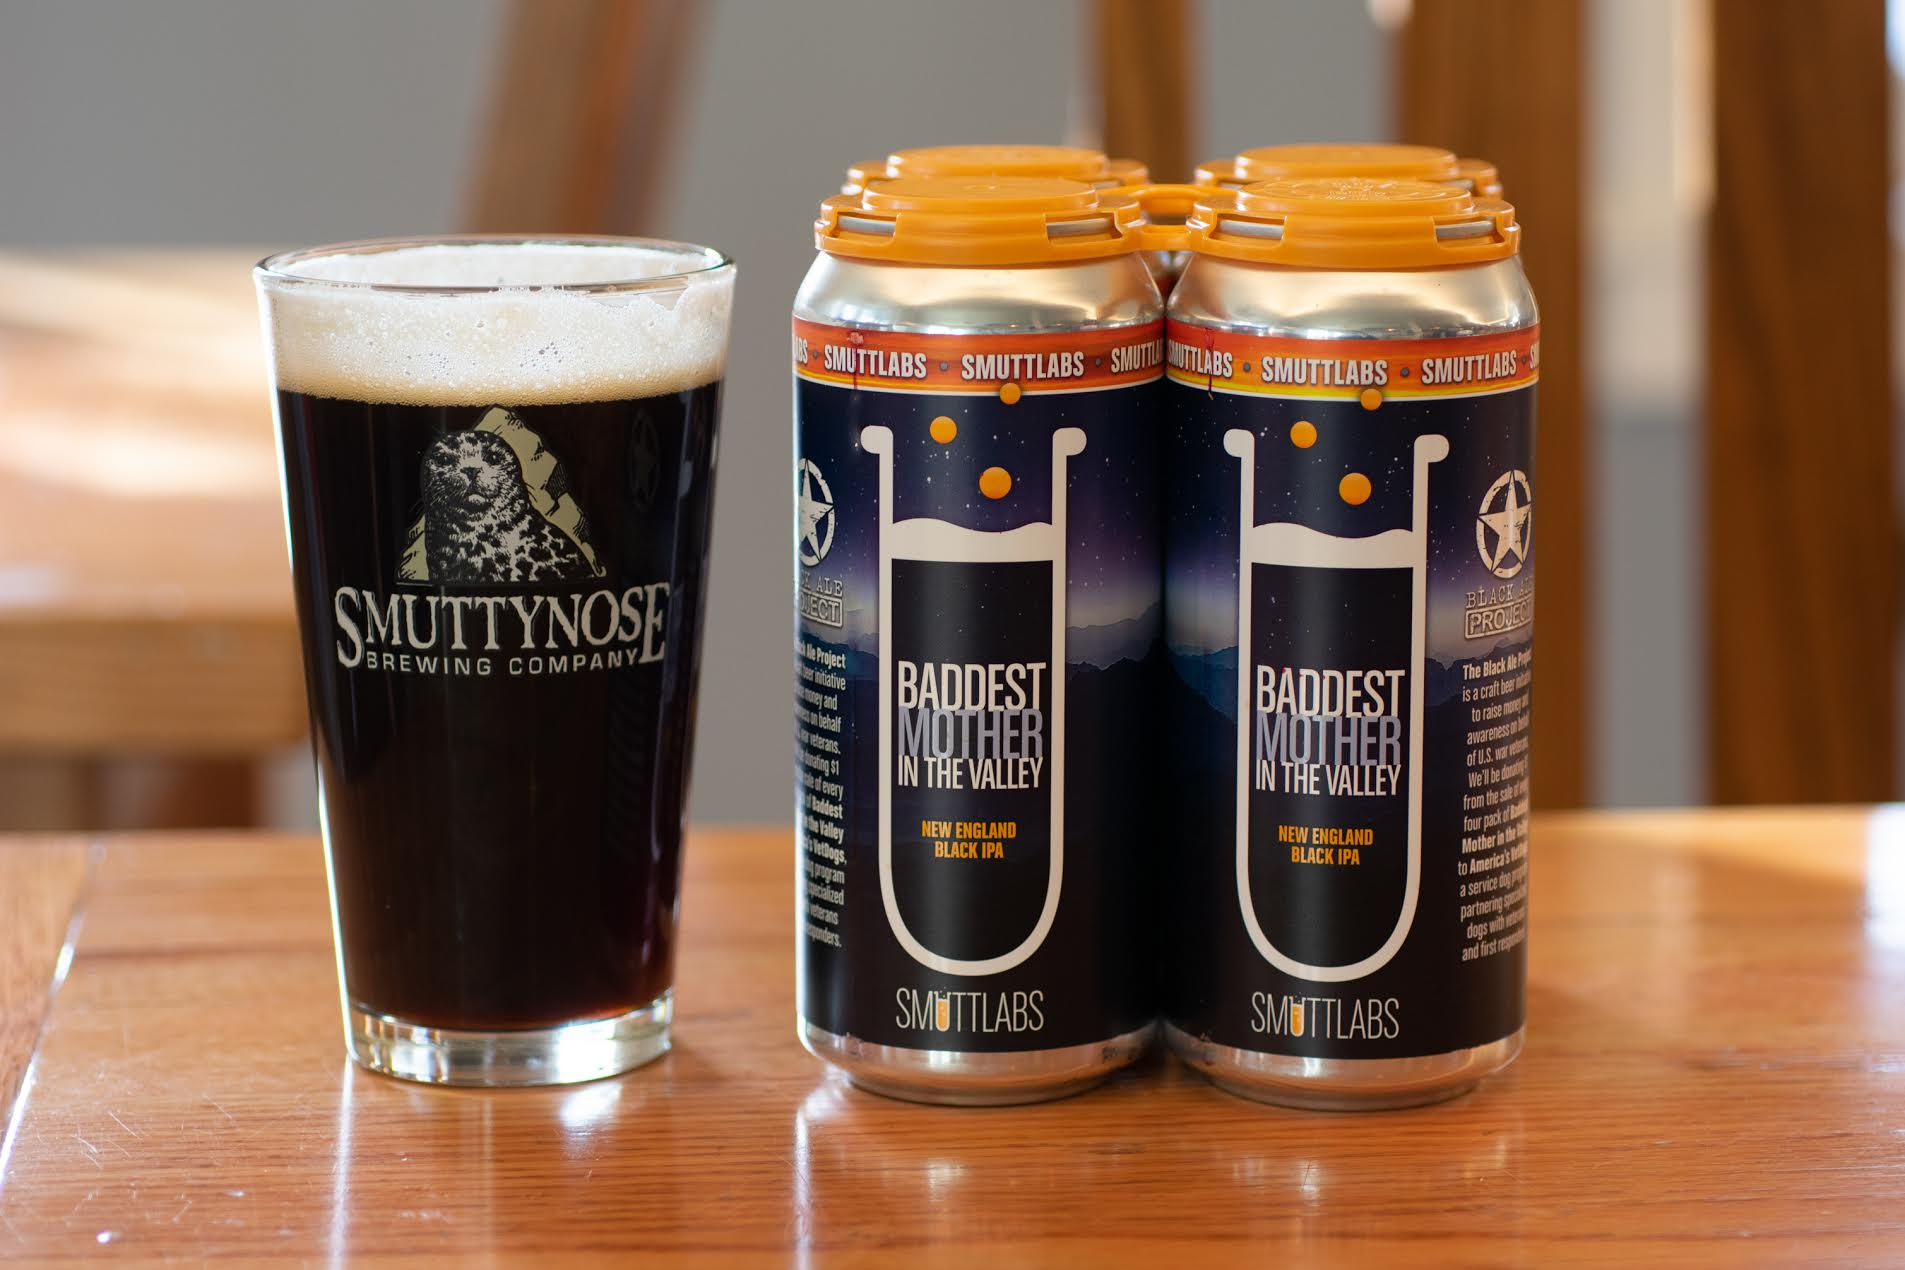 Smuttynose Brewing Releases Baddest Mother In The Valley photo